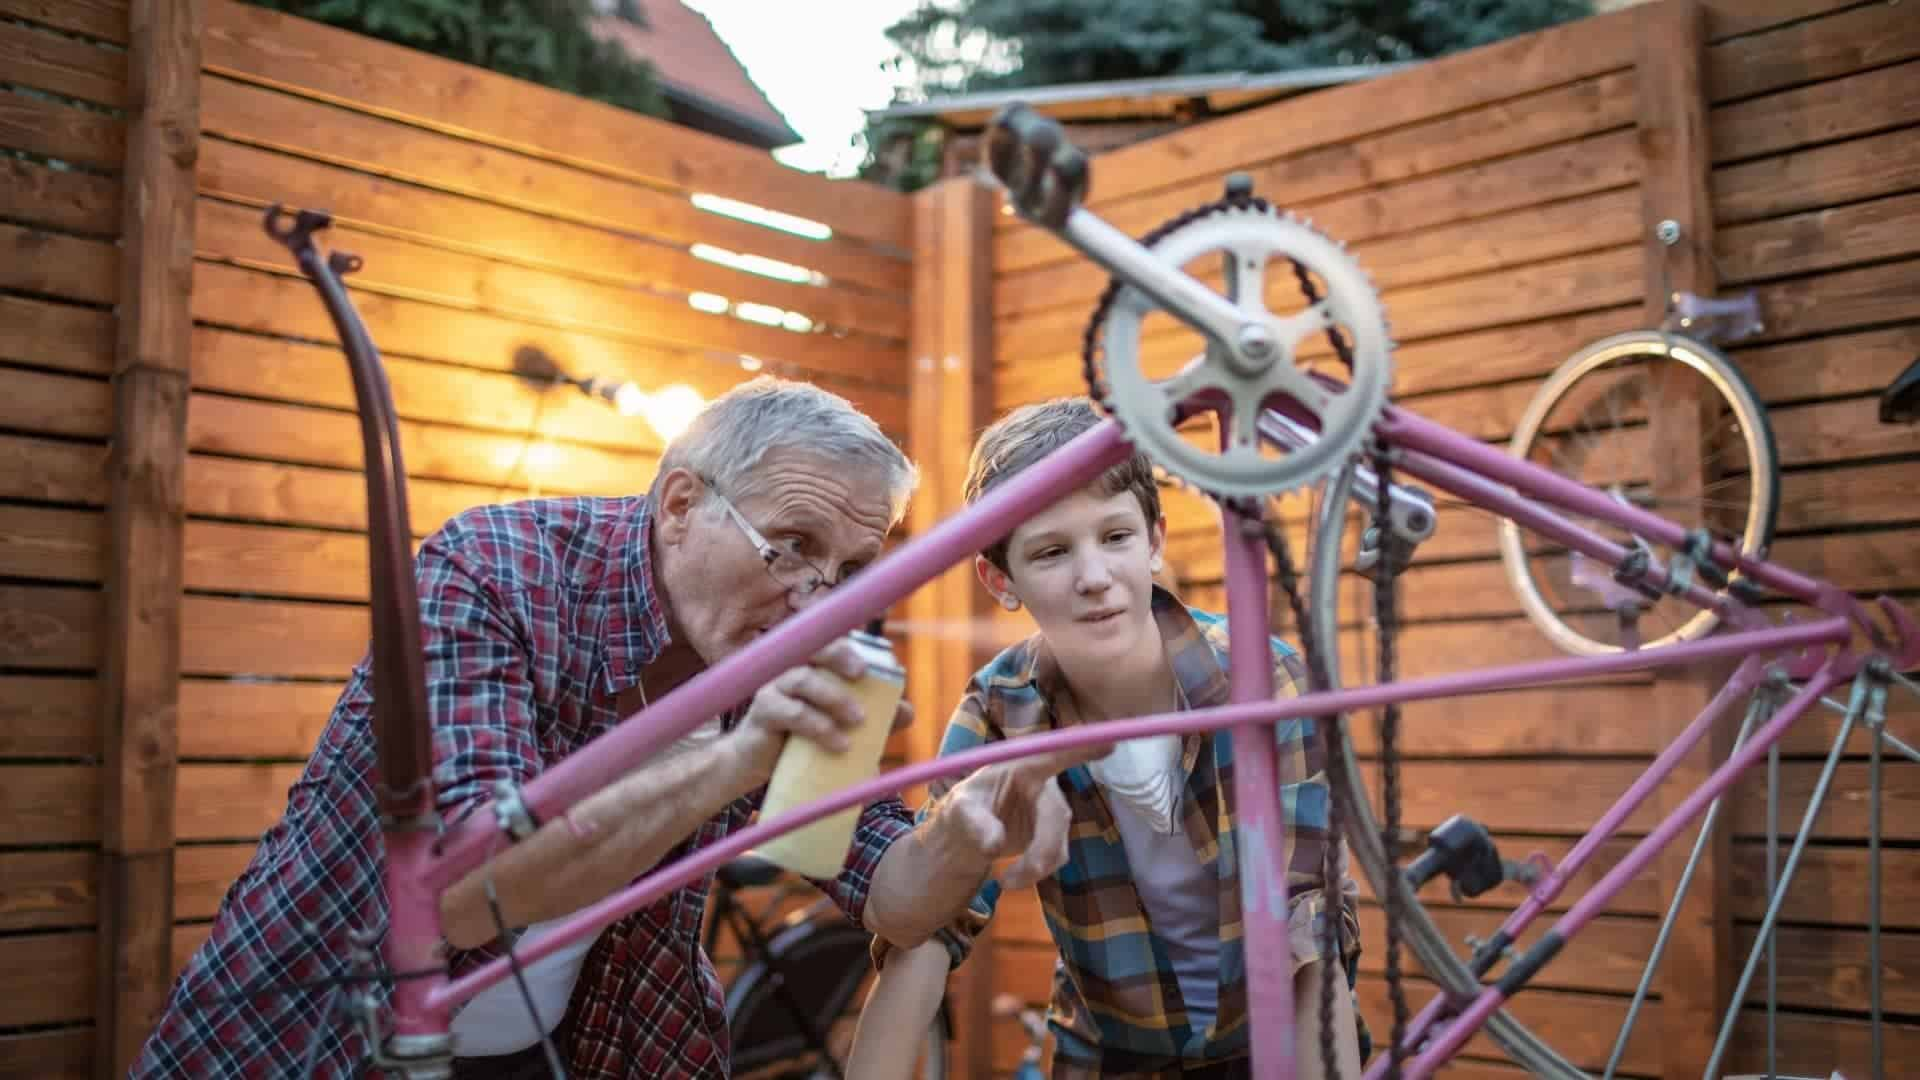 How To Paint A Bicycle